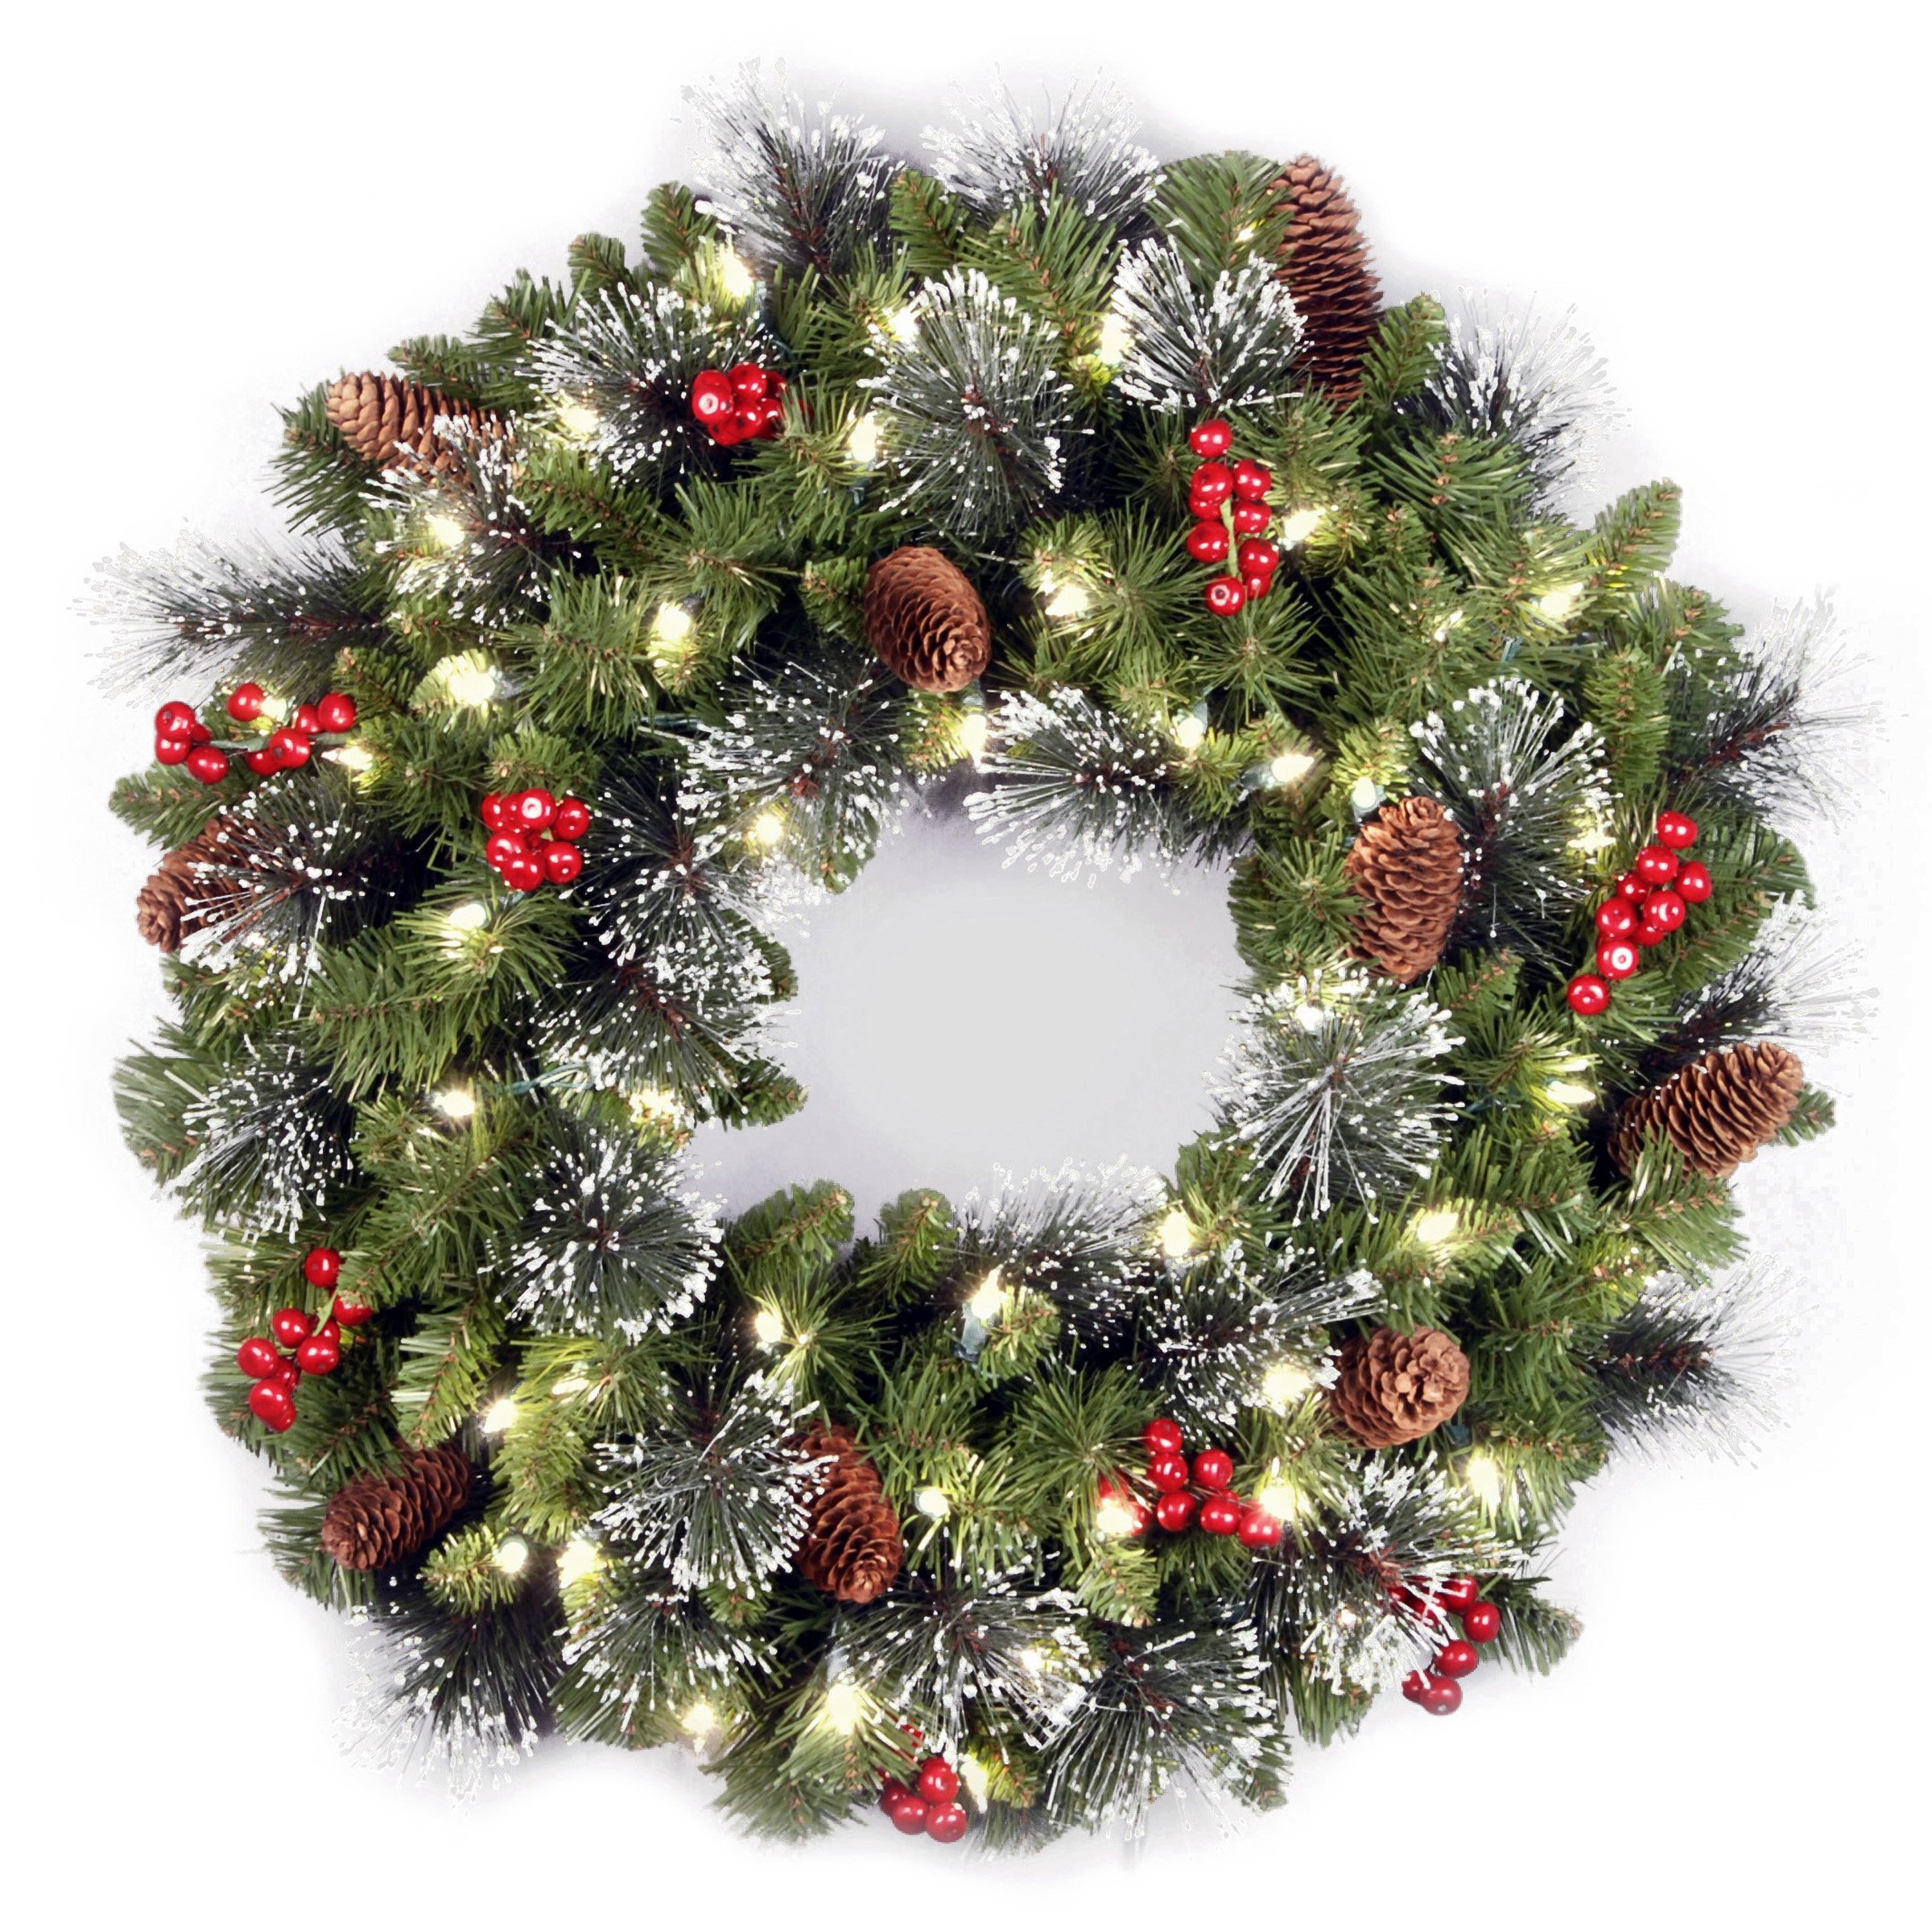 National Tree 24 Inch Crestwood Spruce Wreath with Silver Bristles, Cones, Red Berries and 50 Battery Operated Warm White LED Lights with Timer (CW7-306-24W-B1) by National Tree Company